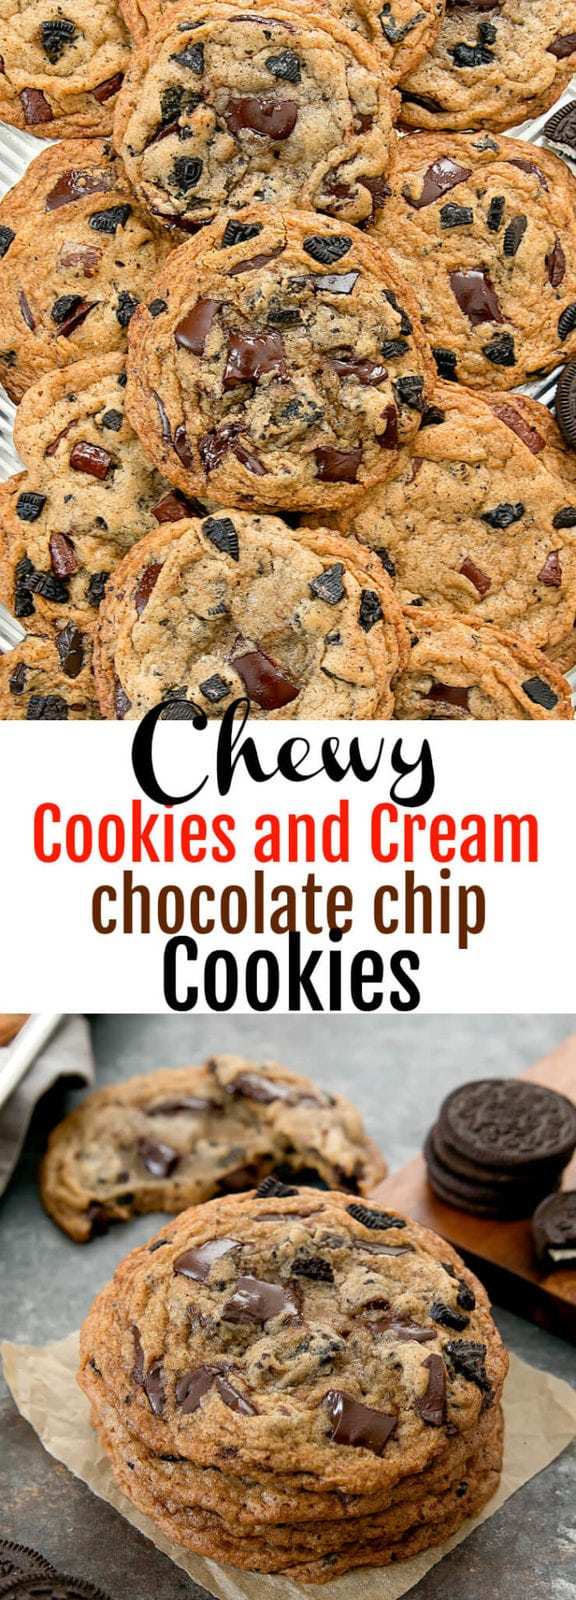 Chewy Cookies and Cream Chocolate Chip Cookies